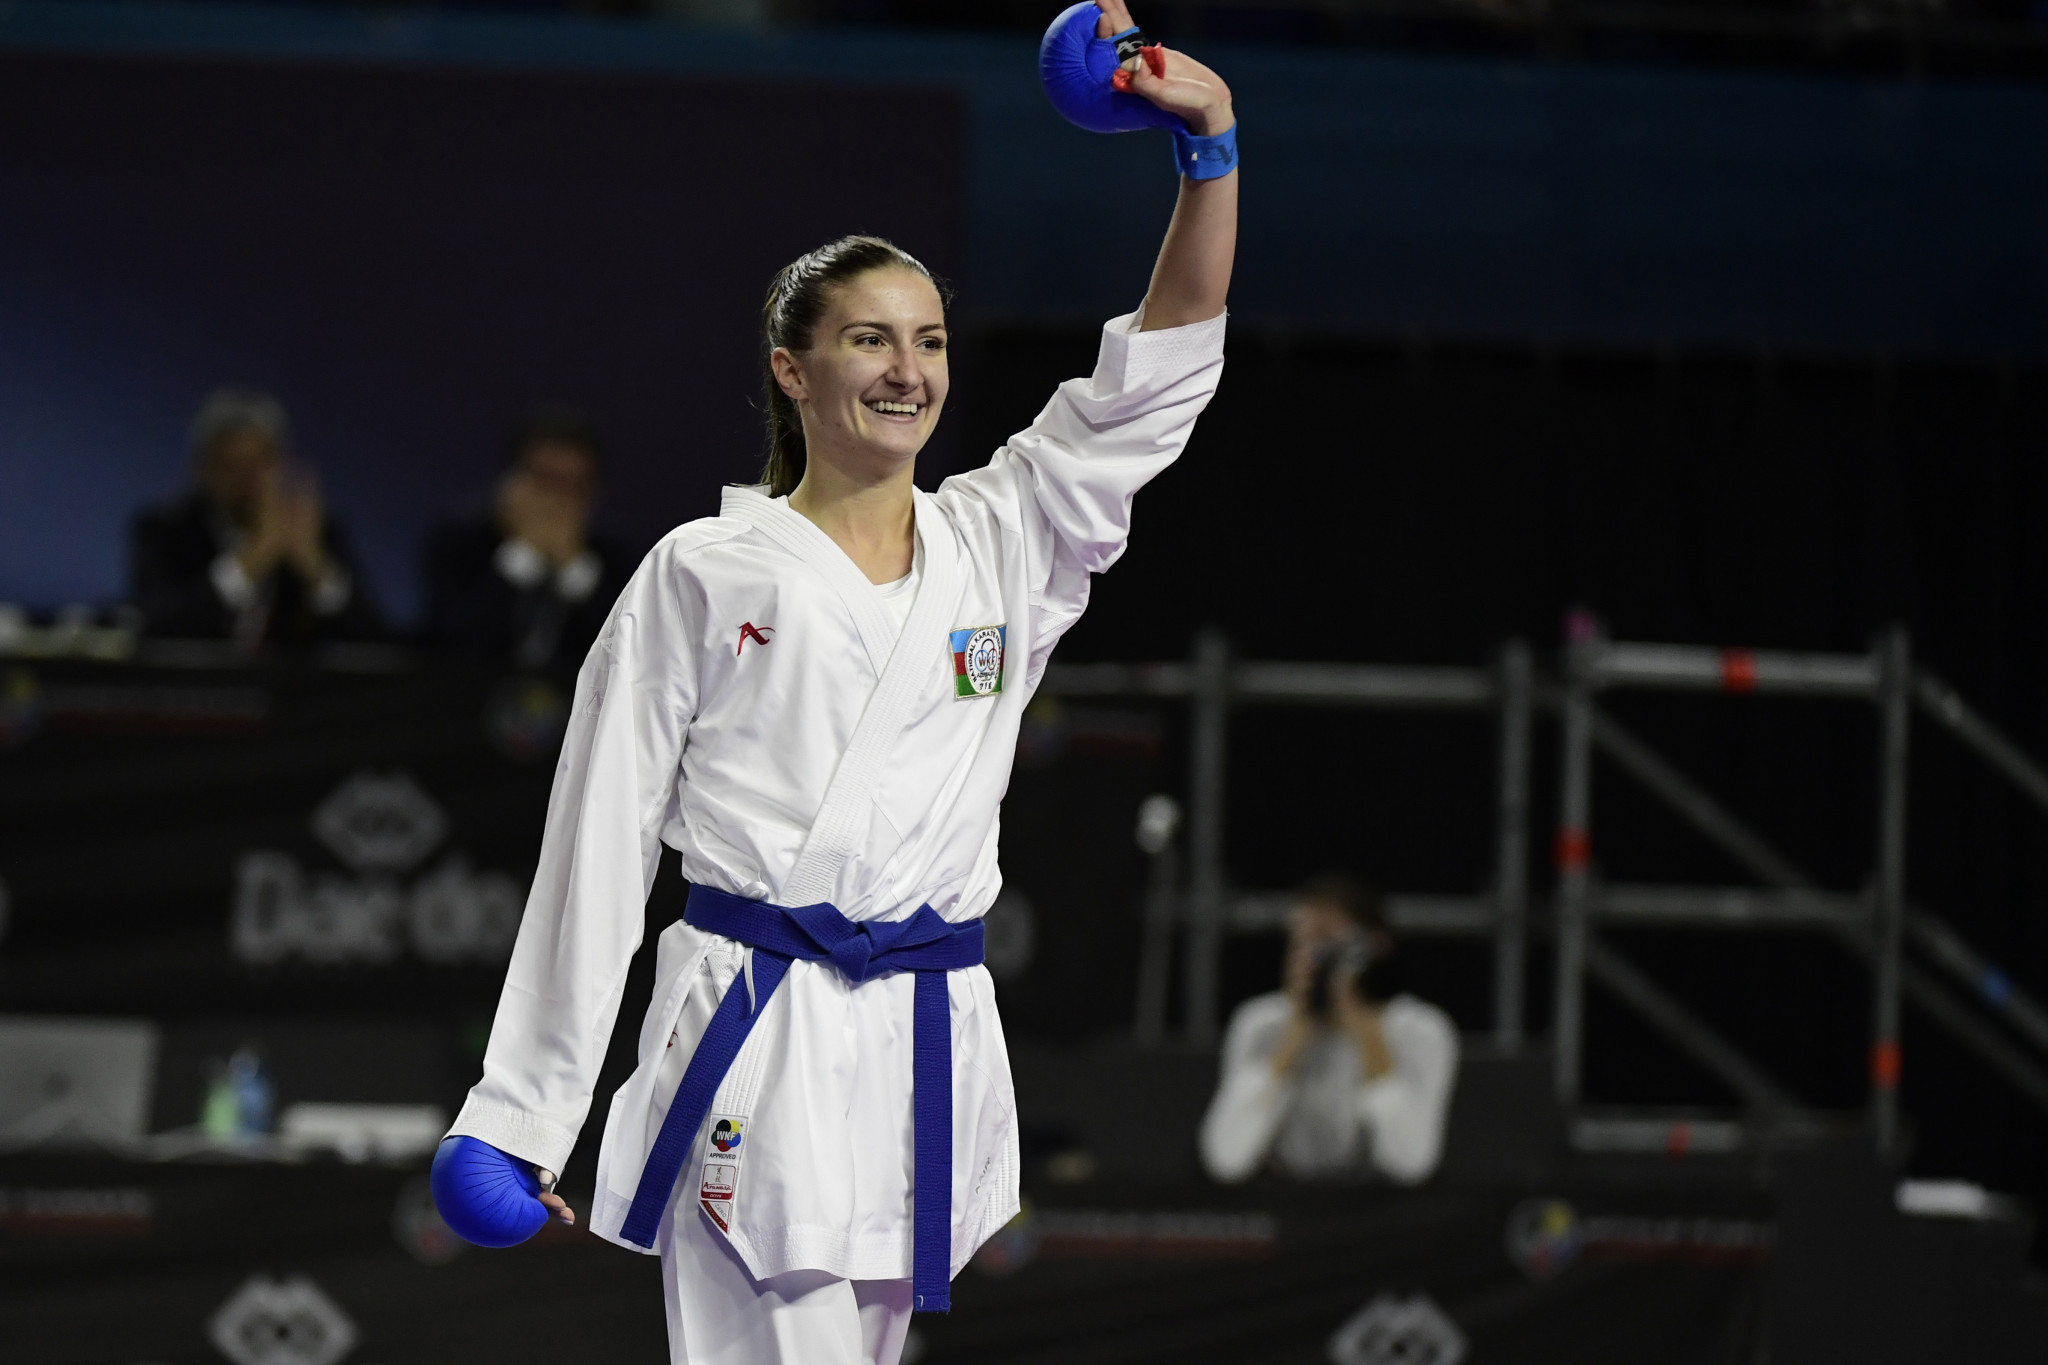 World champion Irina Zaretska of Azerbaijan progressed to the final of the women's under-68 kilograms kumite division in Istanbul ©Getty Images